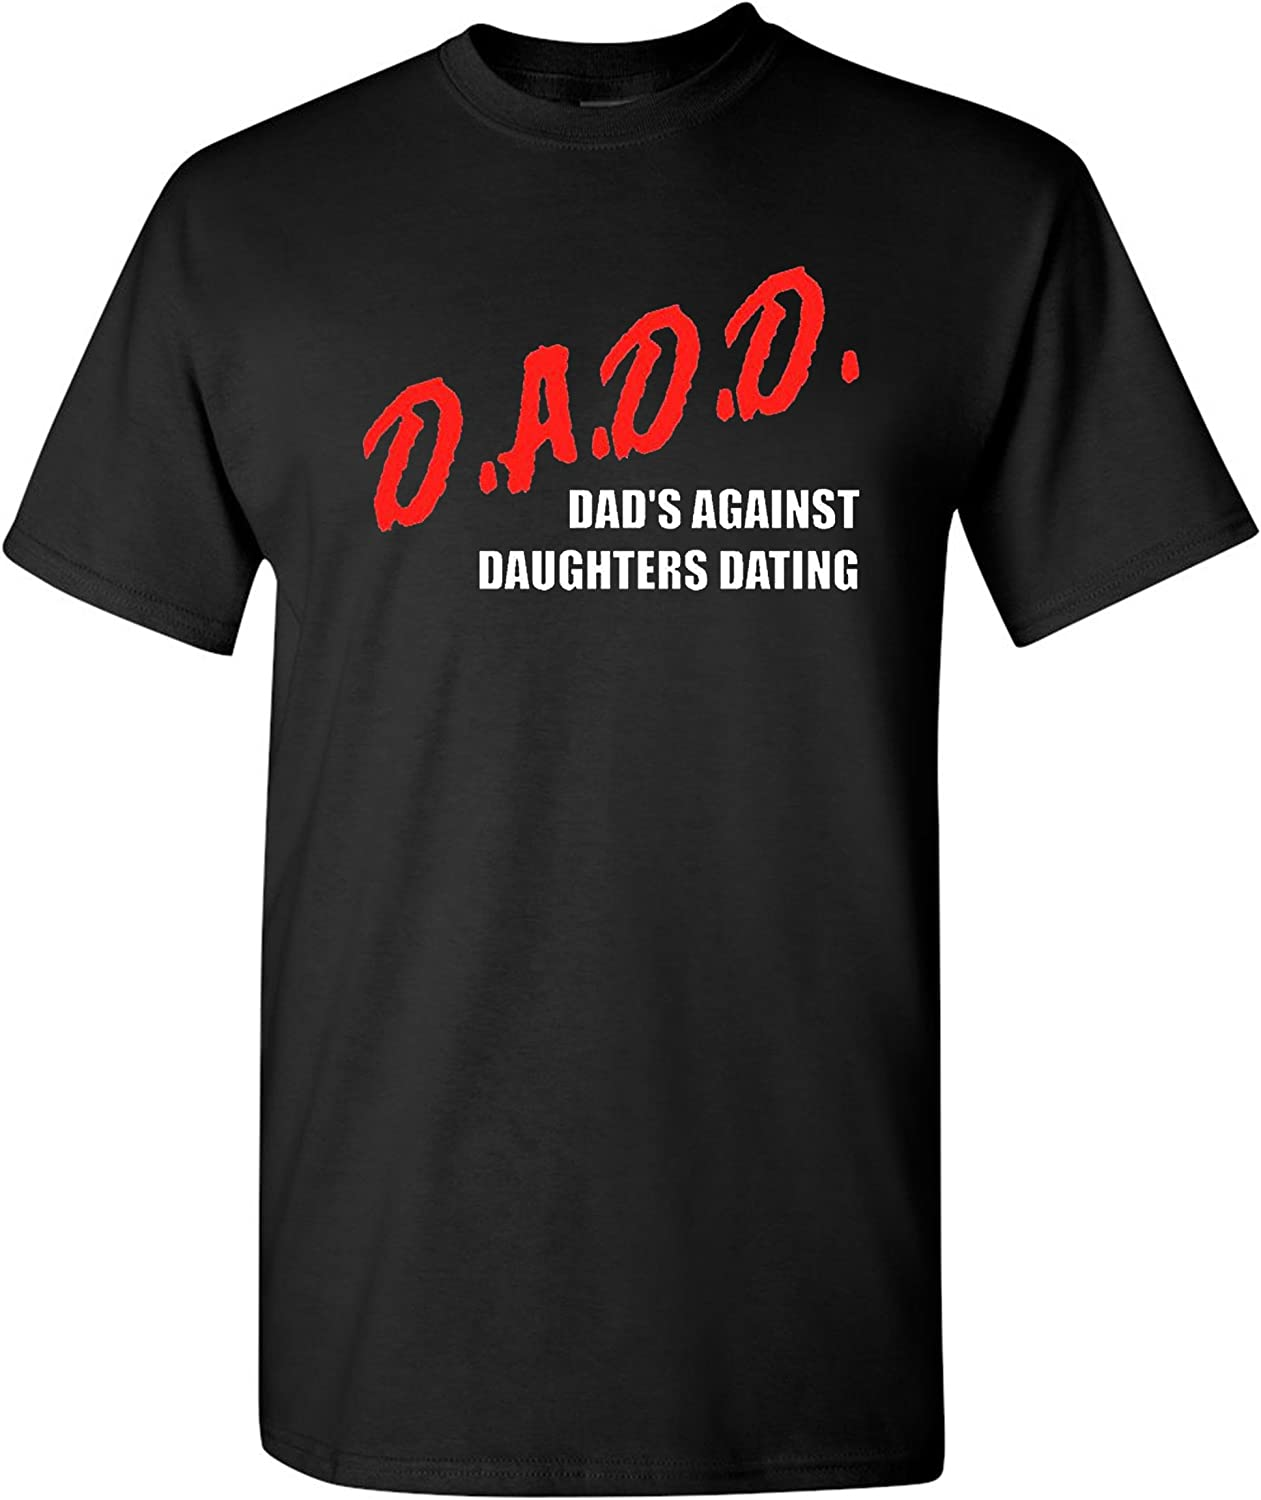 D.a.d.d. dads against daughters dating t-shirt cougar dating site philippines